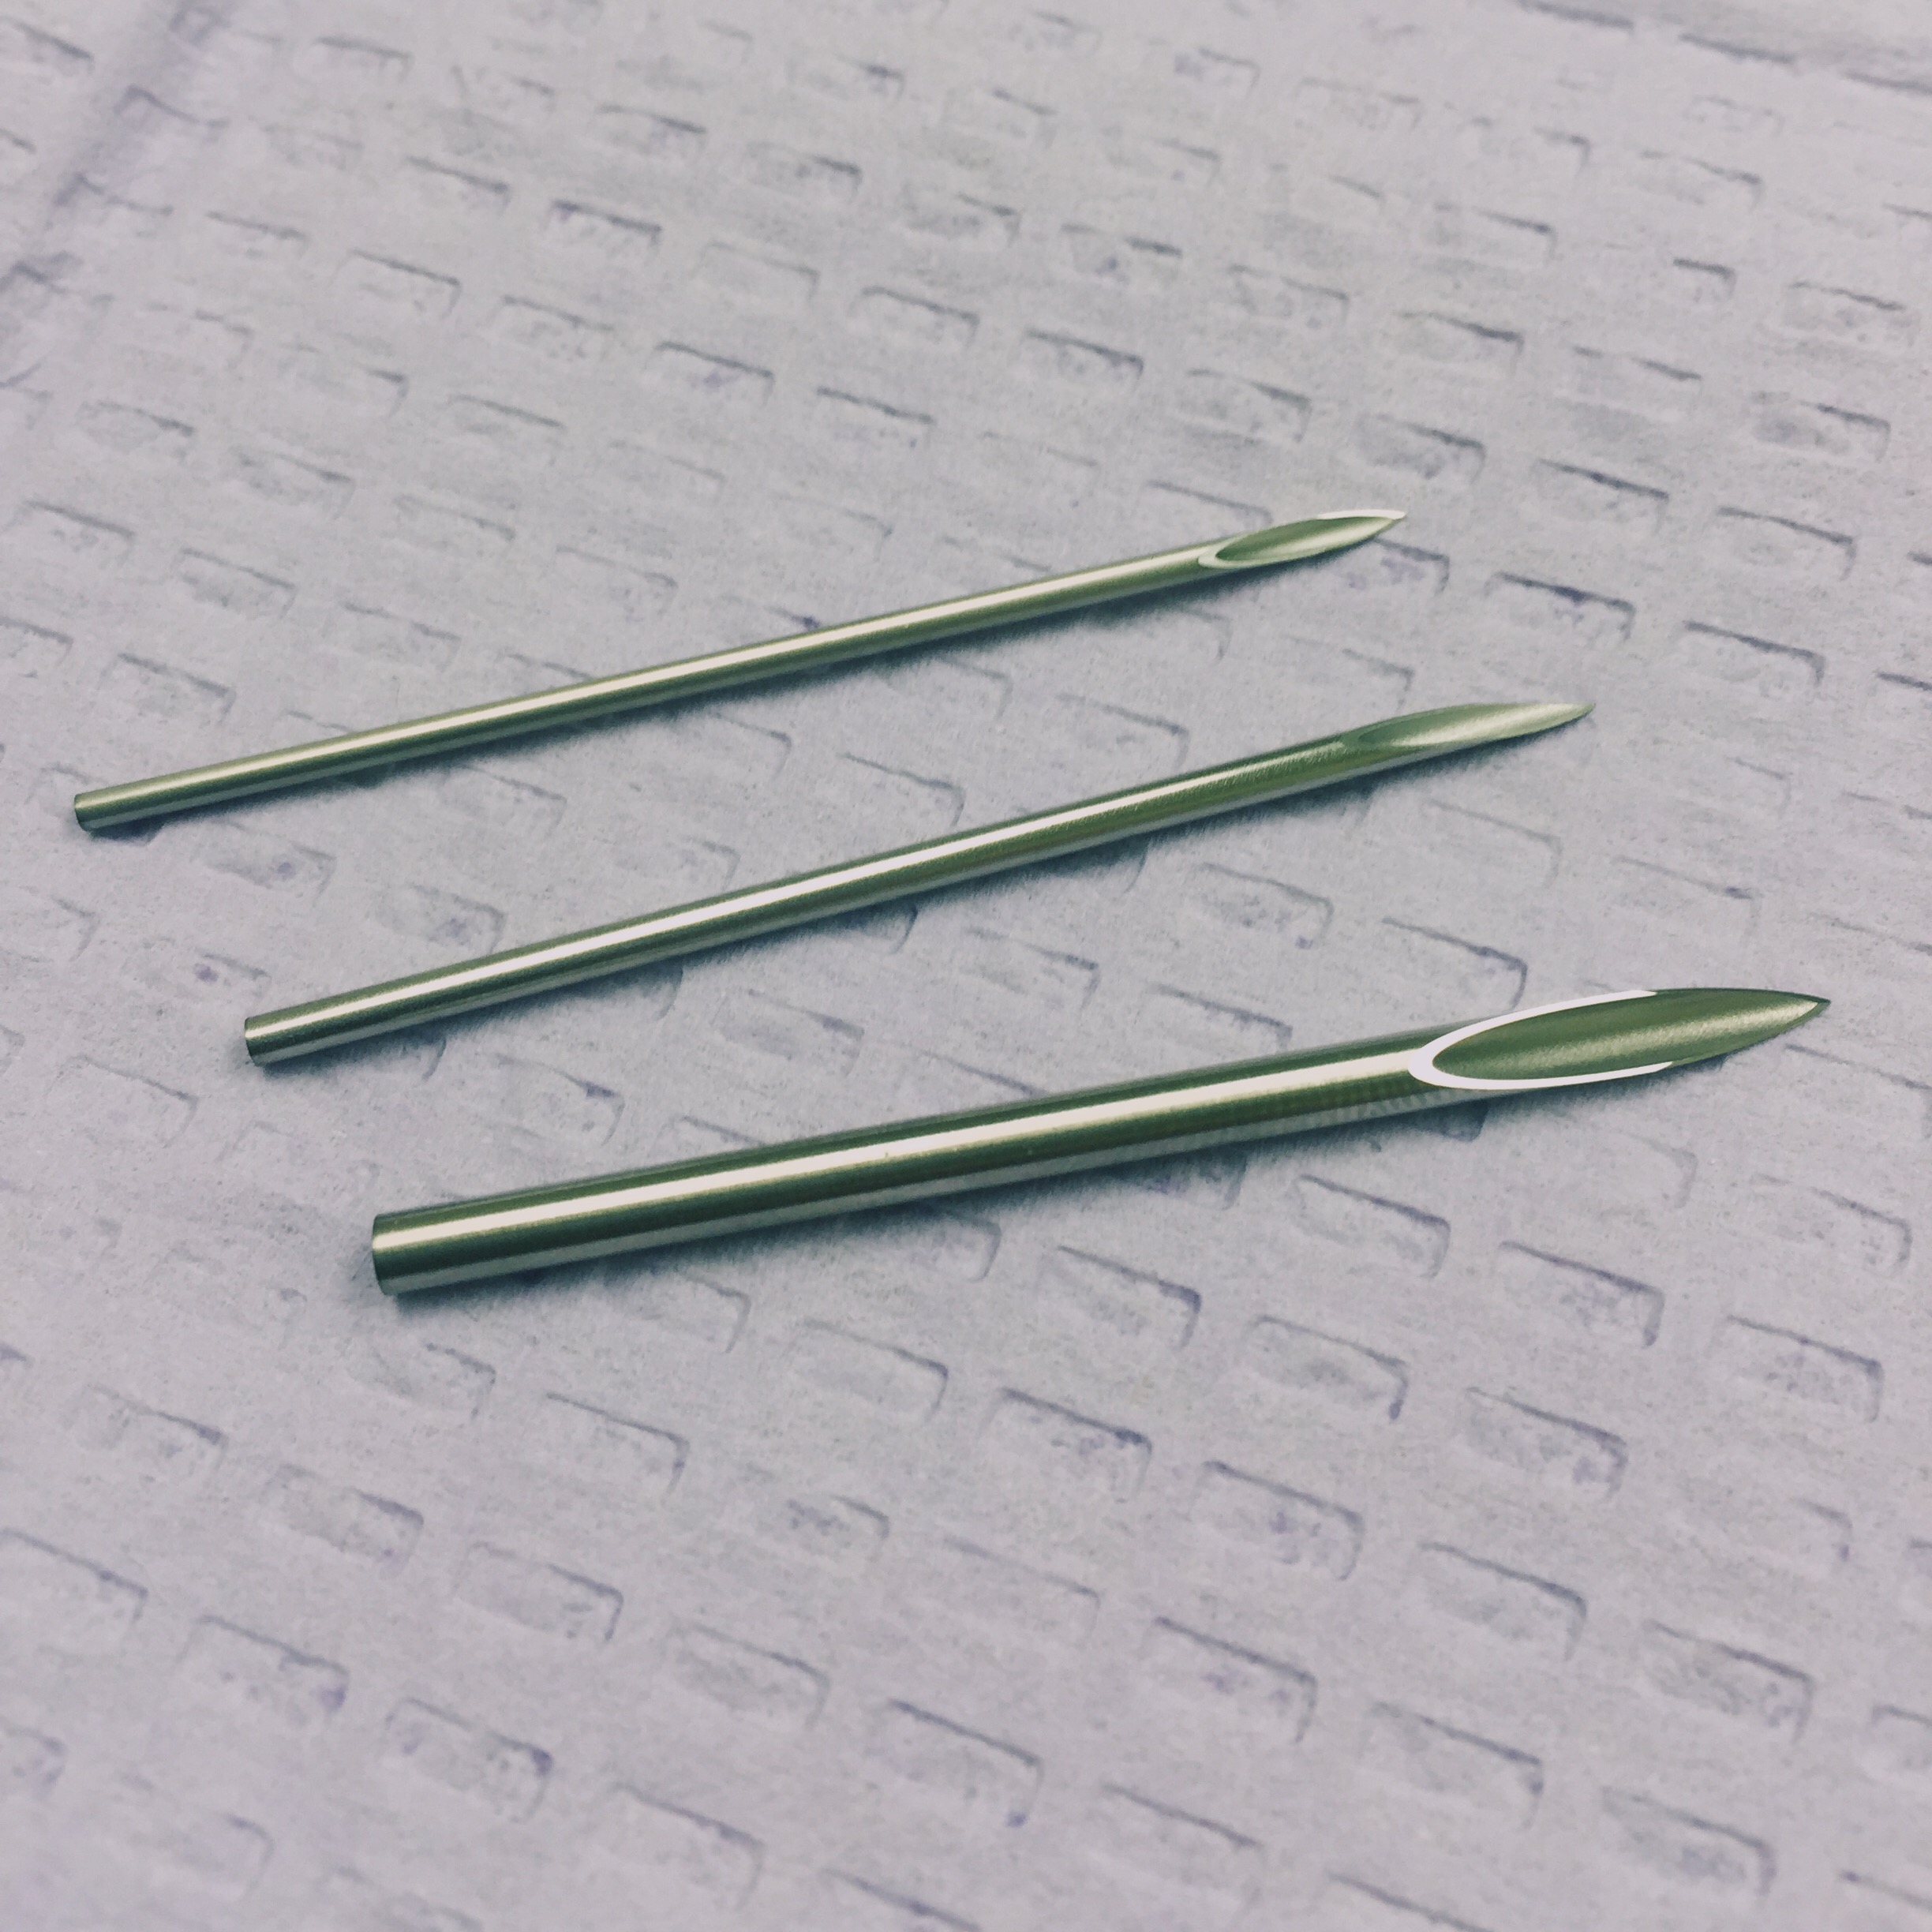 piercing-needles